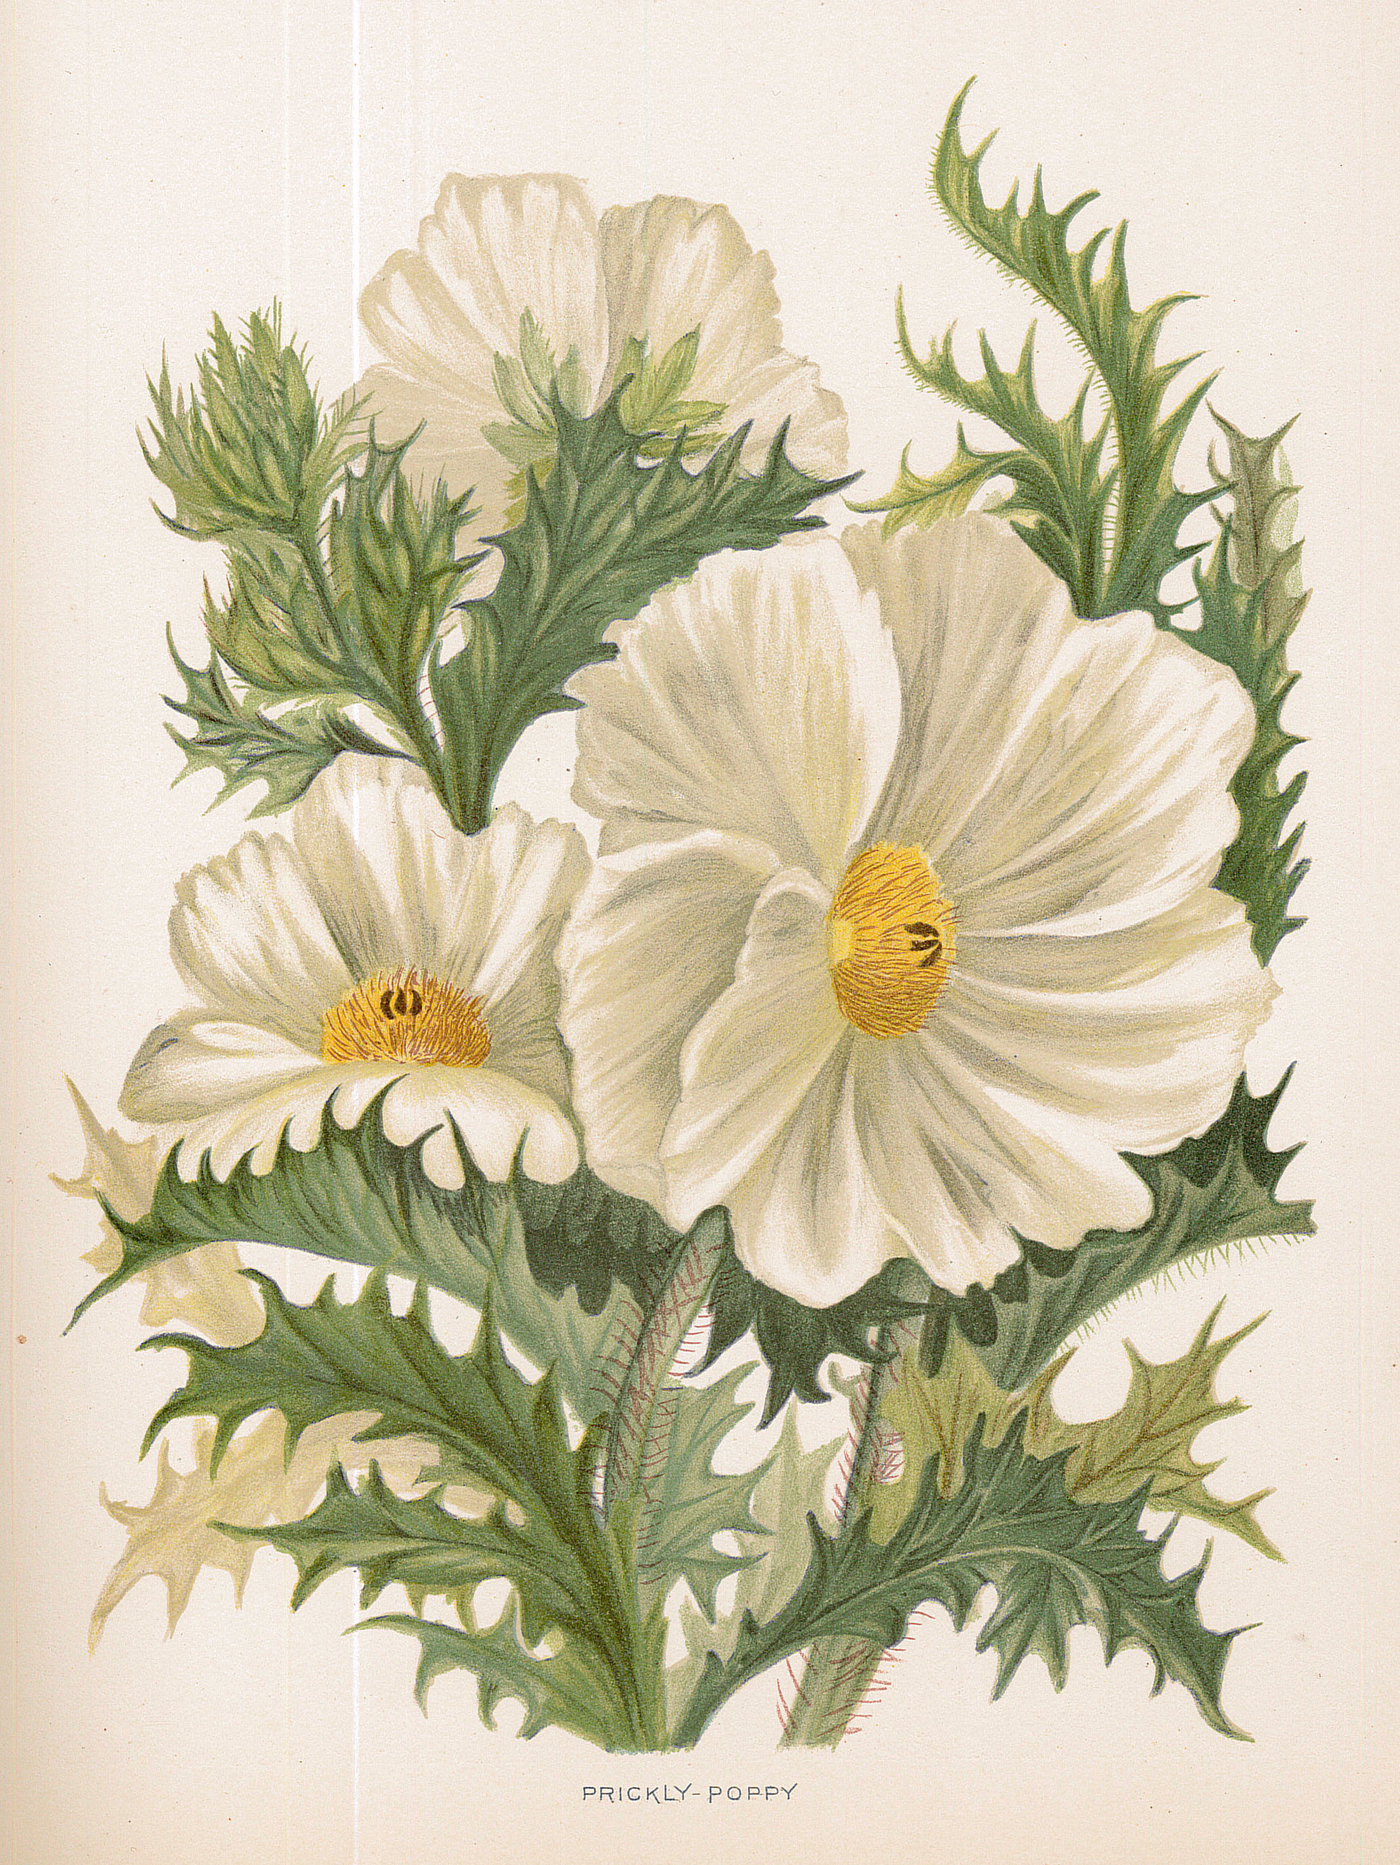 Three white flowers surrounded by prickly green leaves